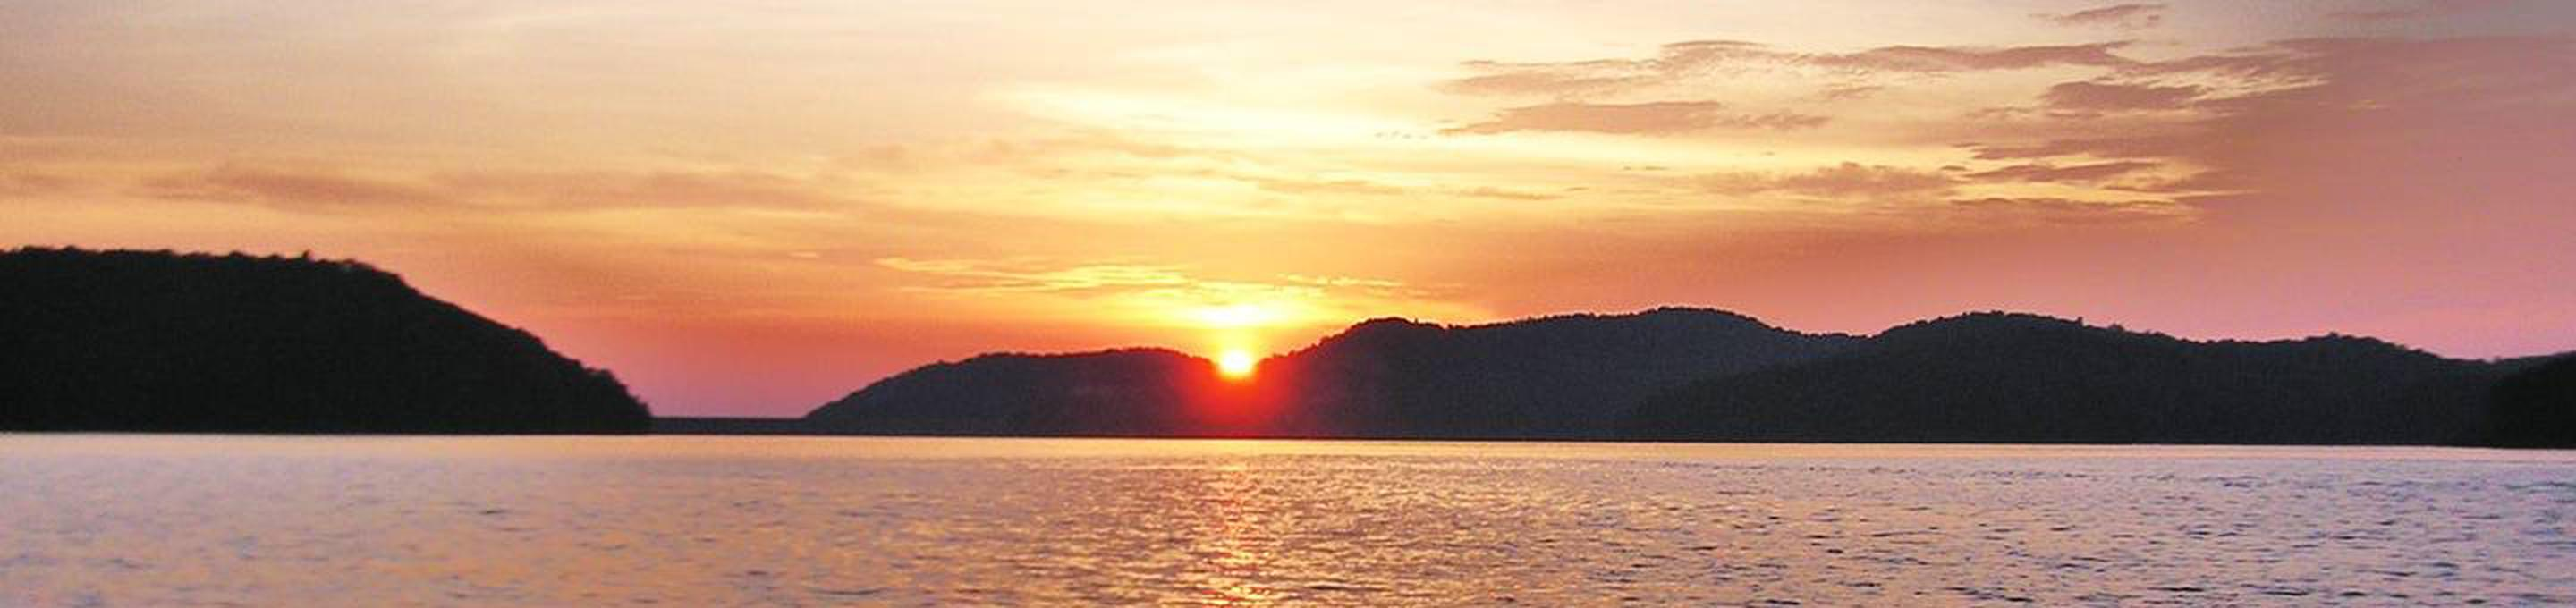 Sunset over carters lakeSunset